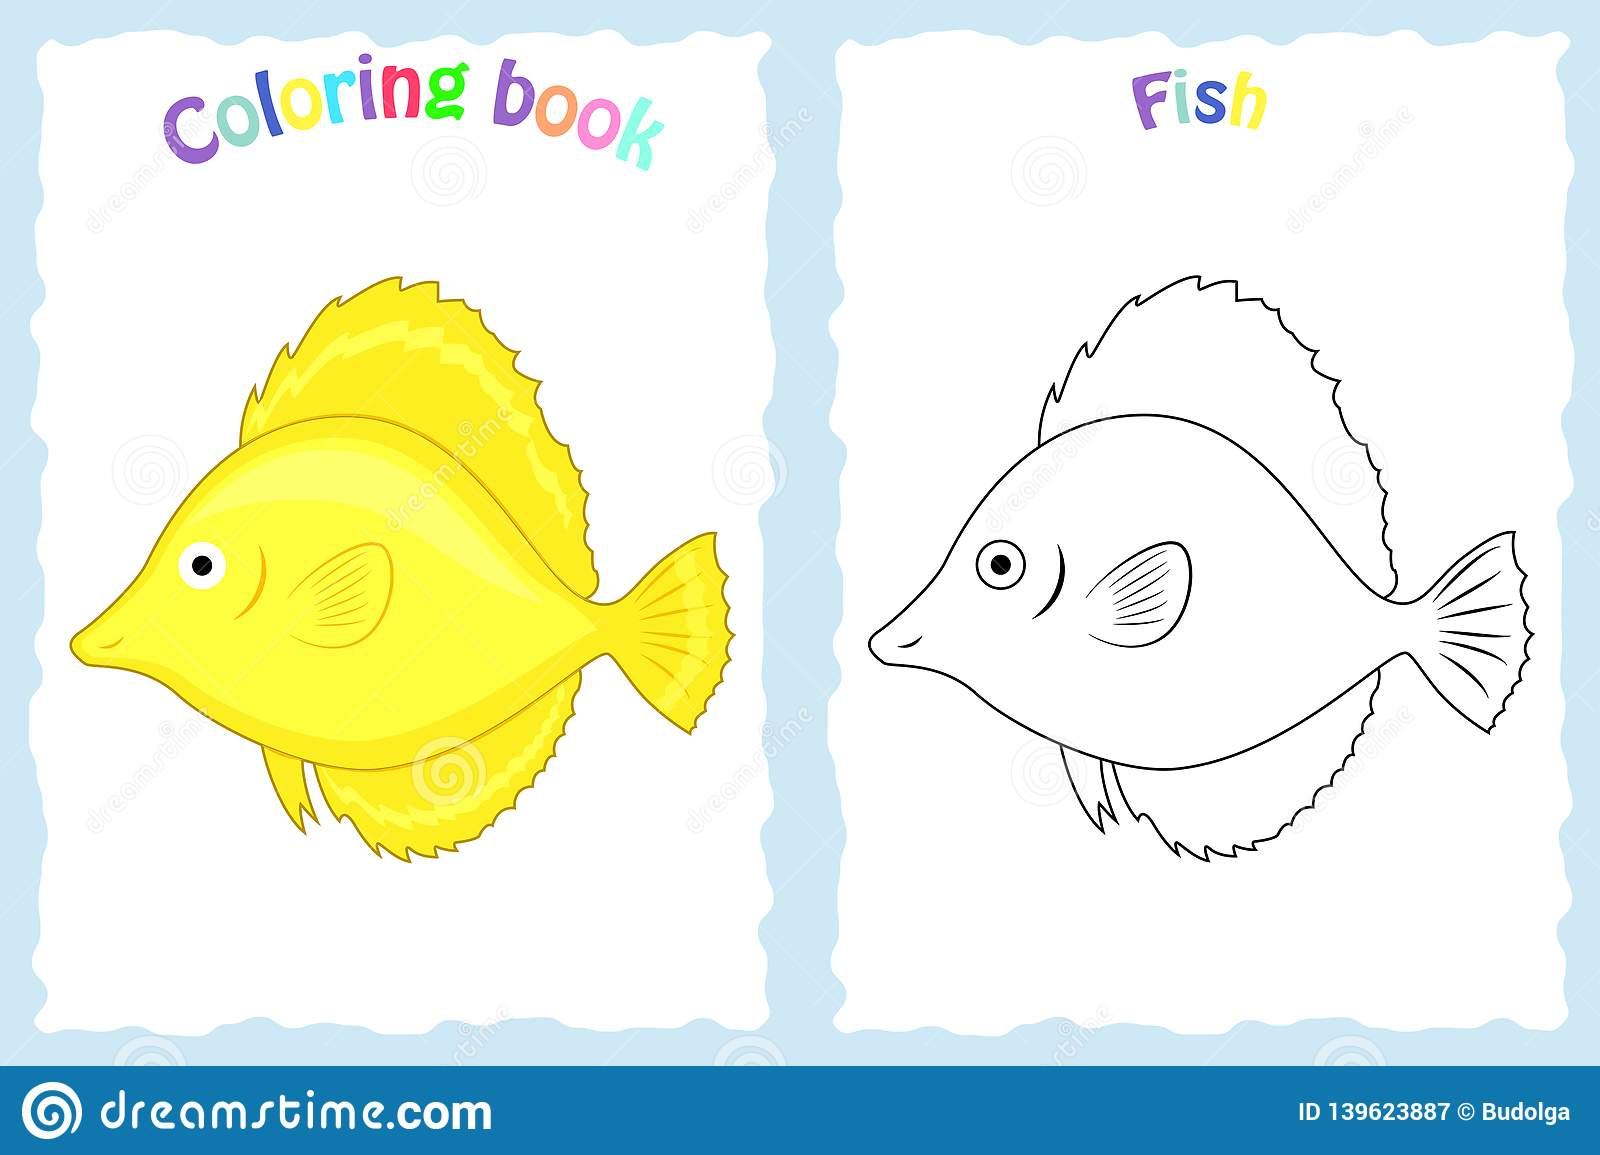 coloring book page for children with colorful yellow fish and sketch to color preschool education stock vector illustration of kindergarten graphic 139623887 https www dreamstime com coloring book page children colorful yellow fish sketch to color preschool education coloring book page children image139623887